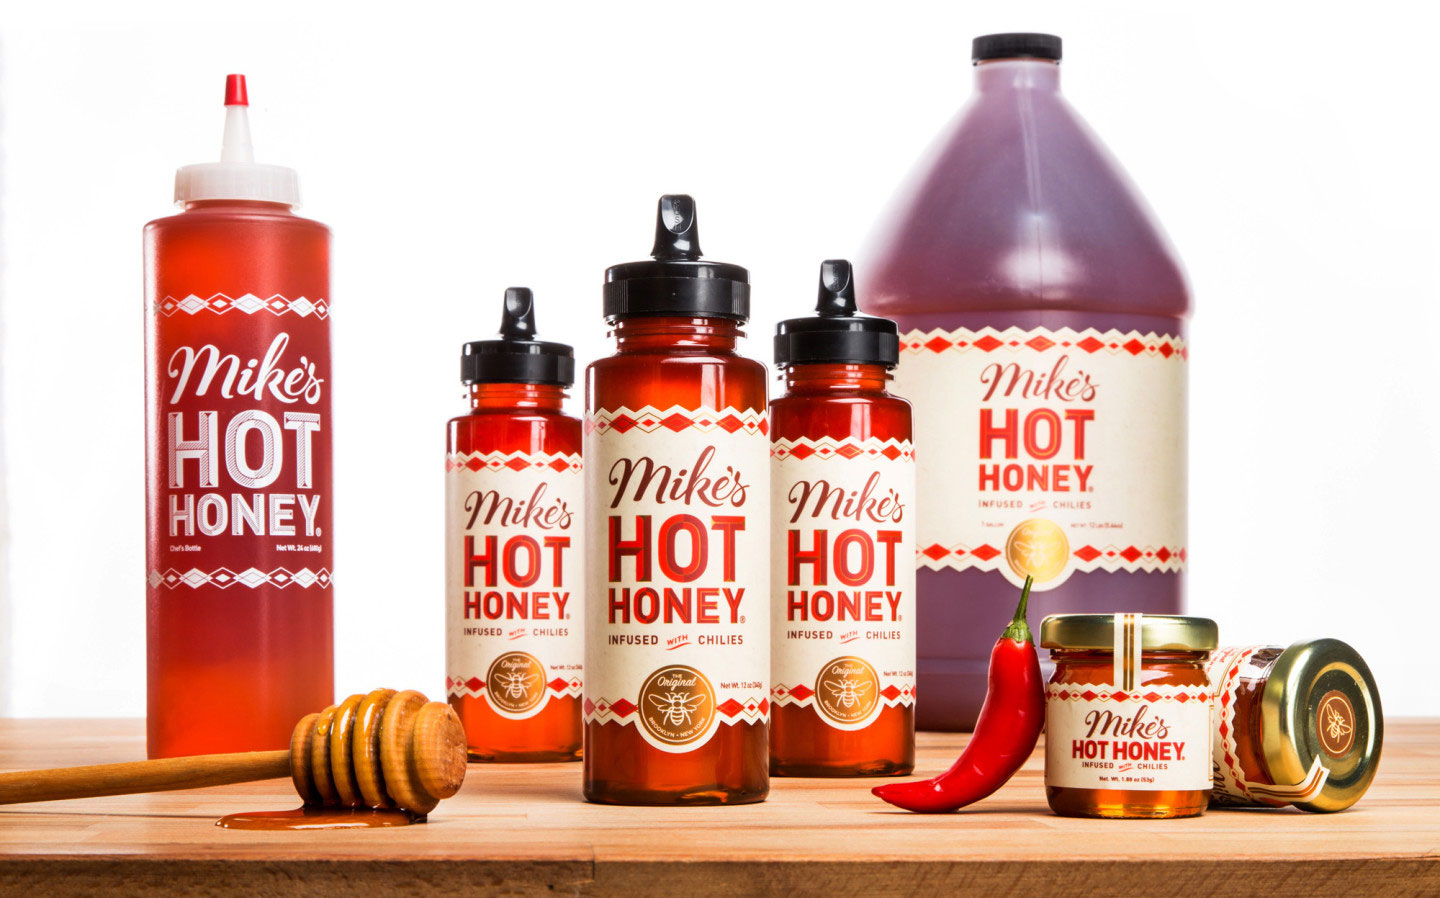 Mike's Hot Honey Products